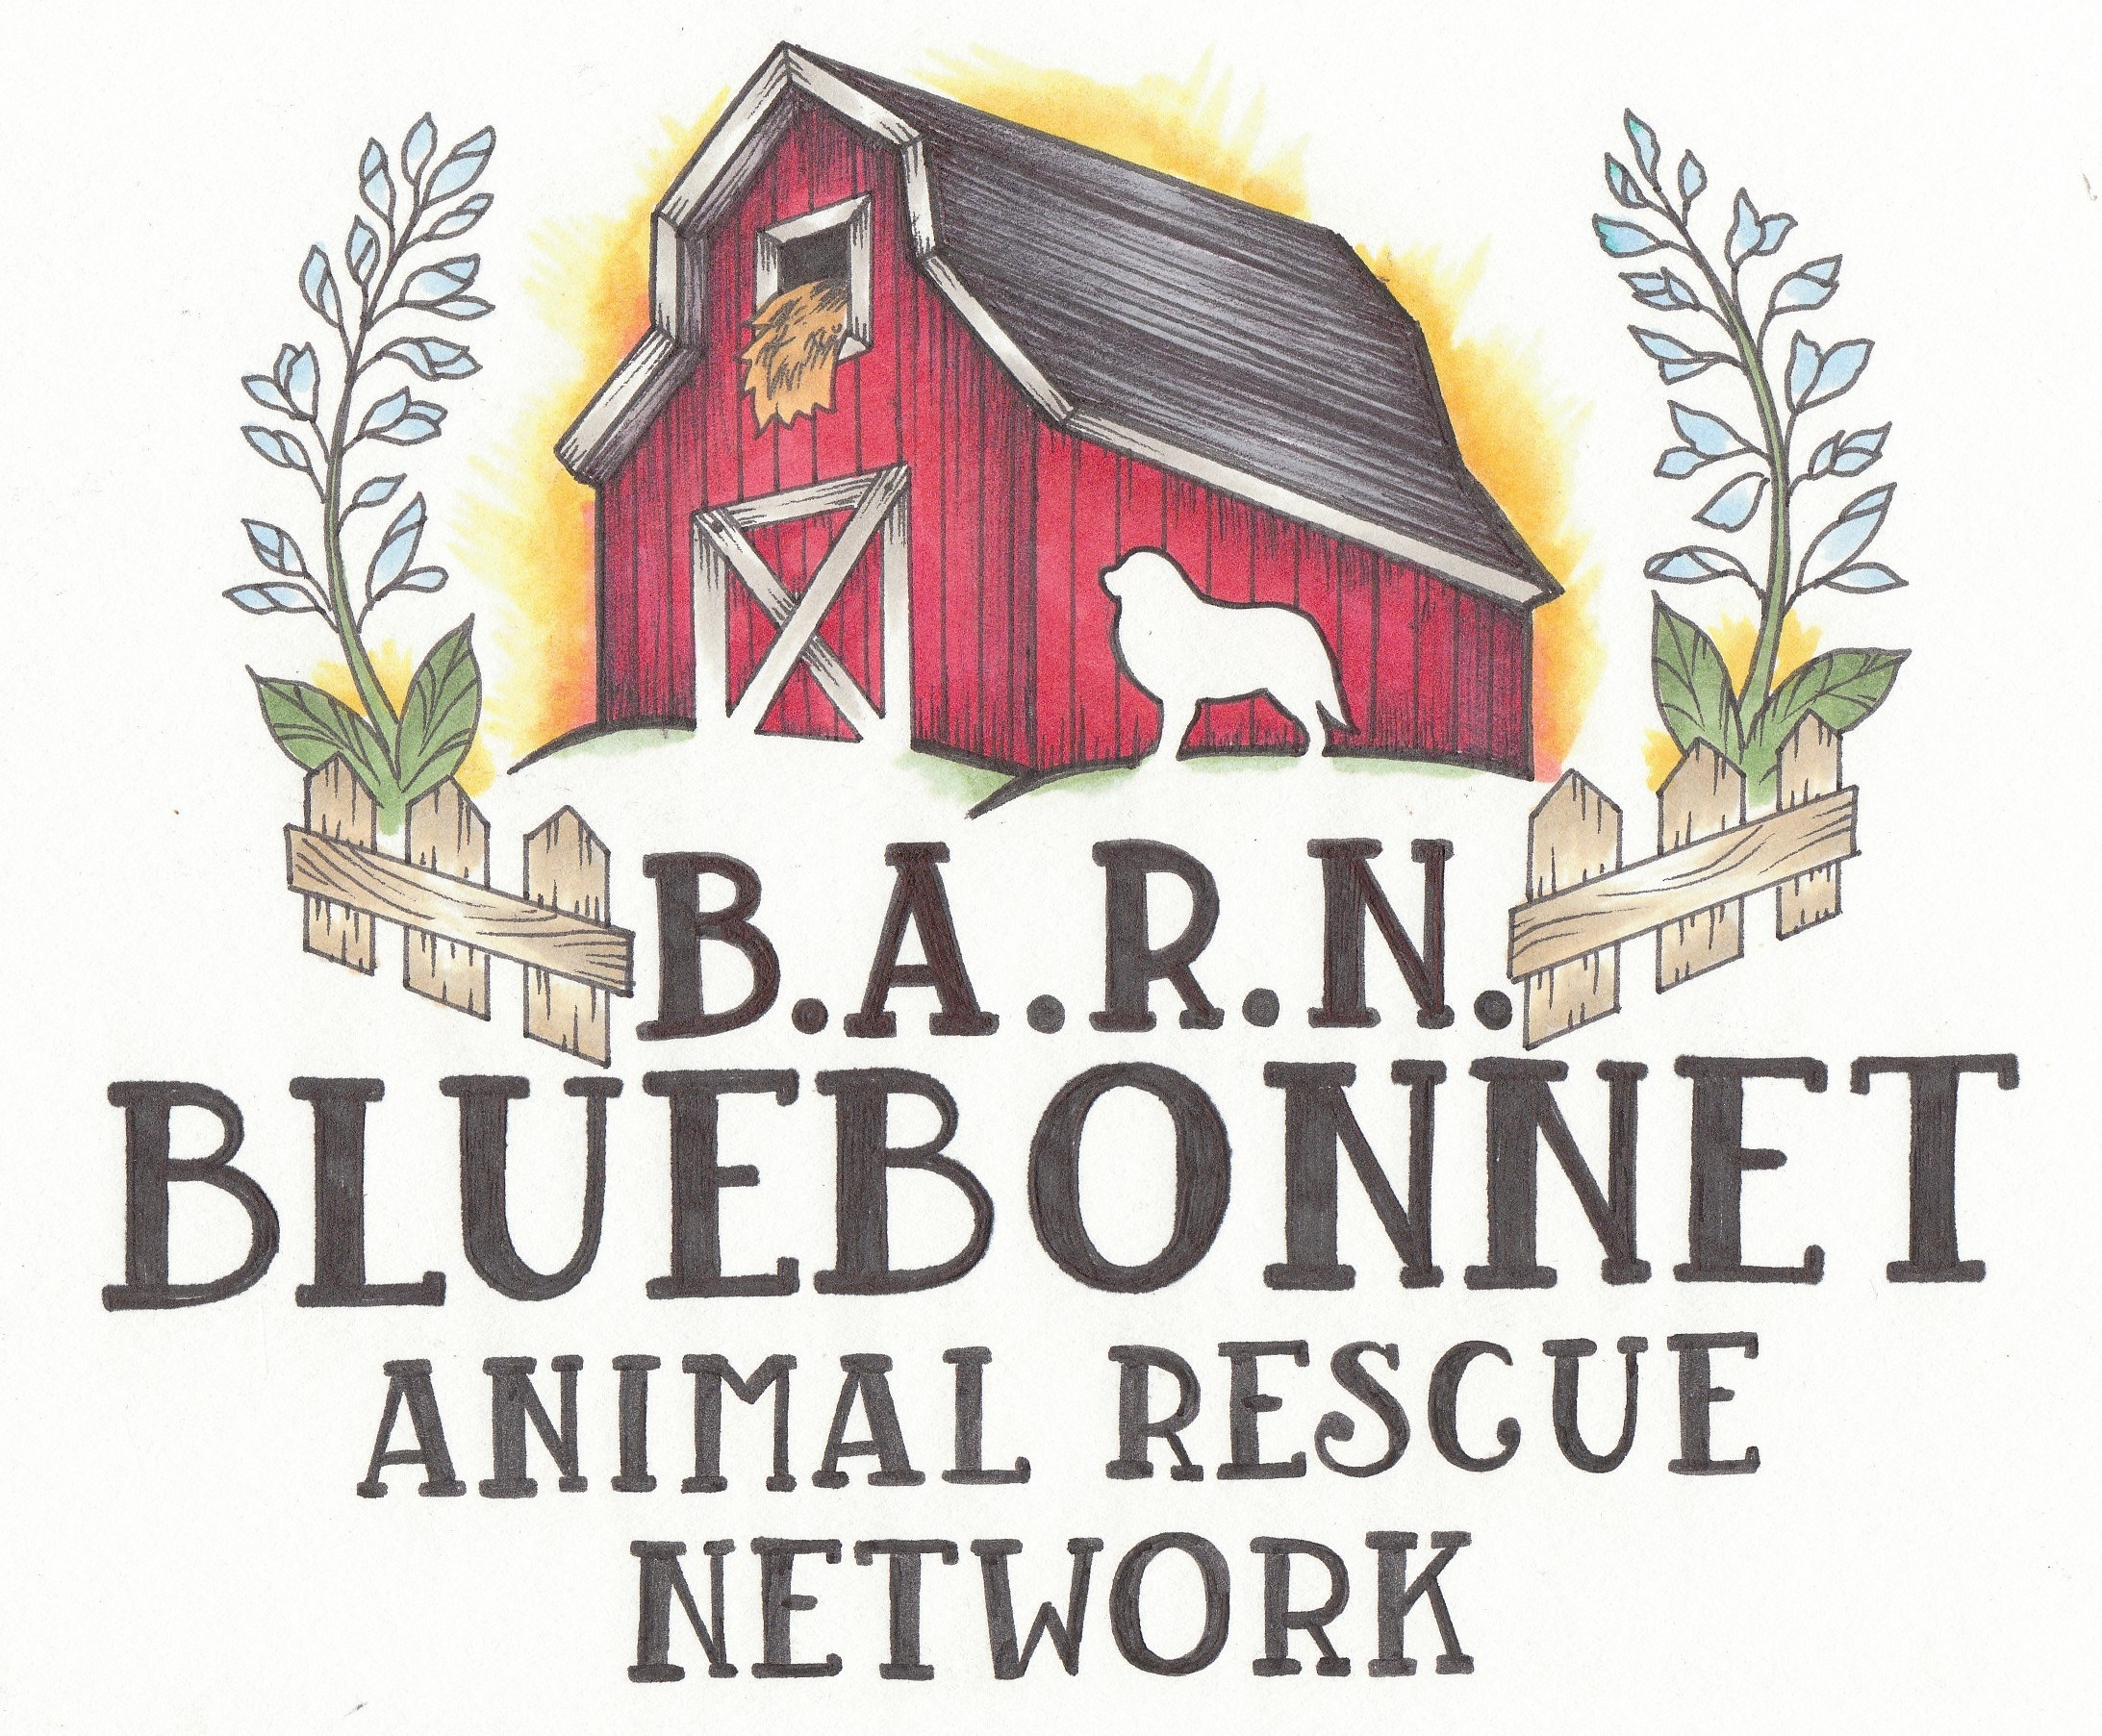 Bluebonnet Animal Rescue Network